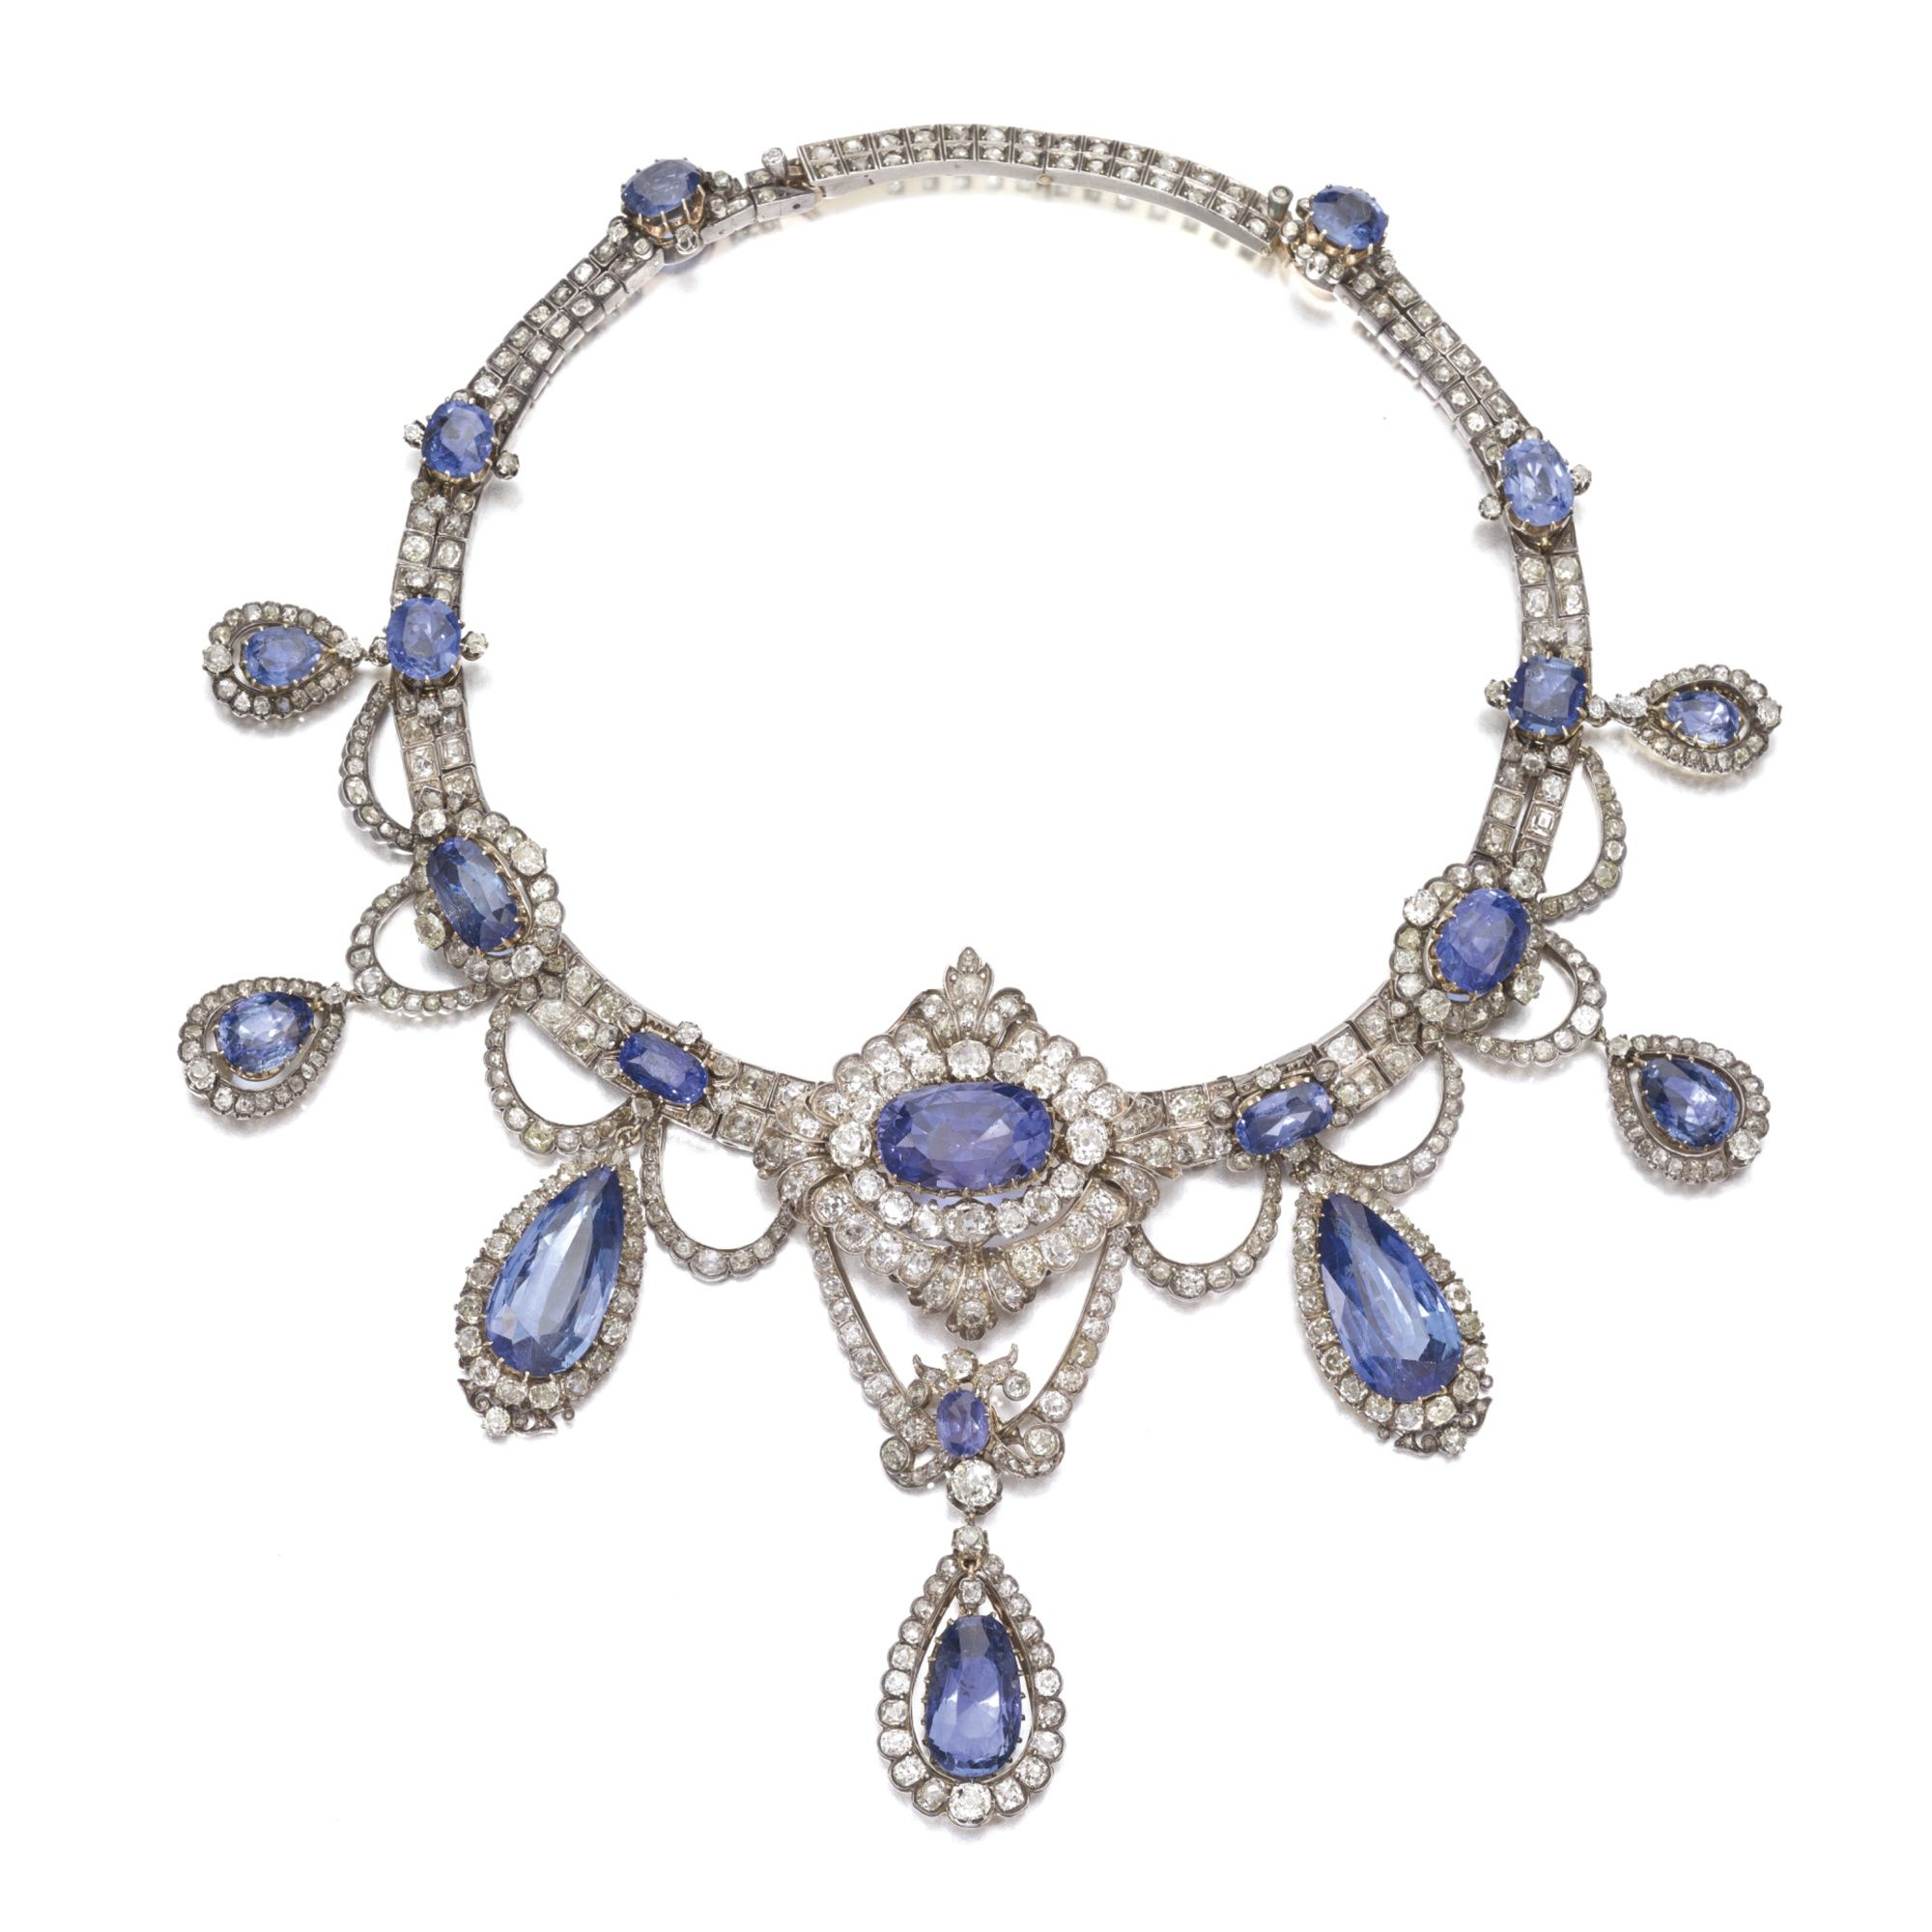 FROM THE COLLECTION OF A ROMAN PRINCELY FAMILY Sapphire and